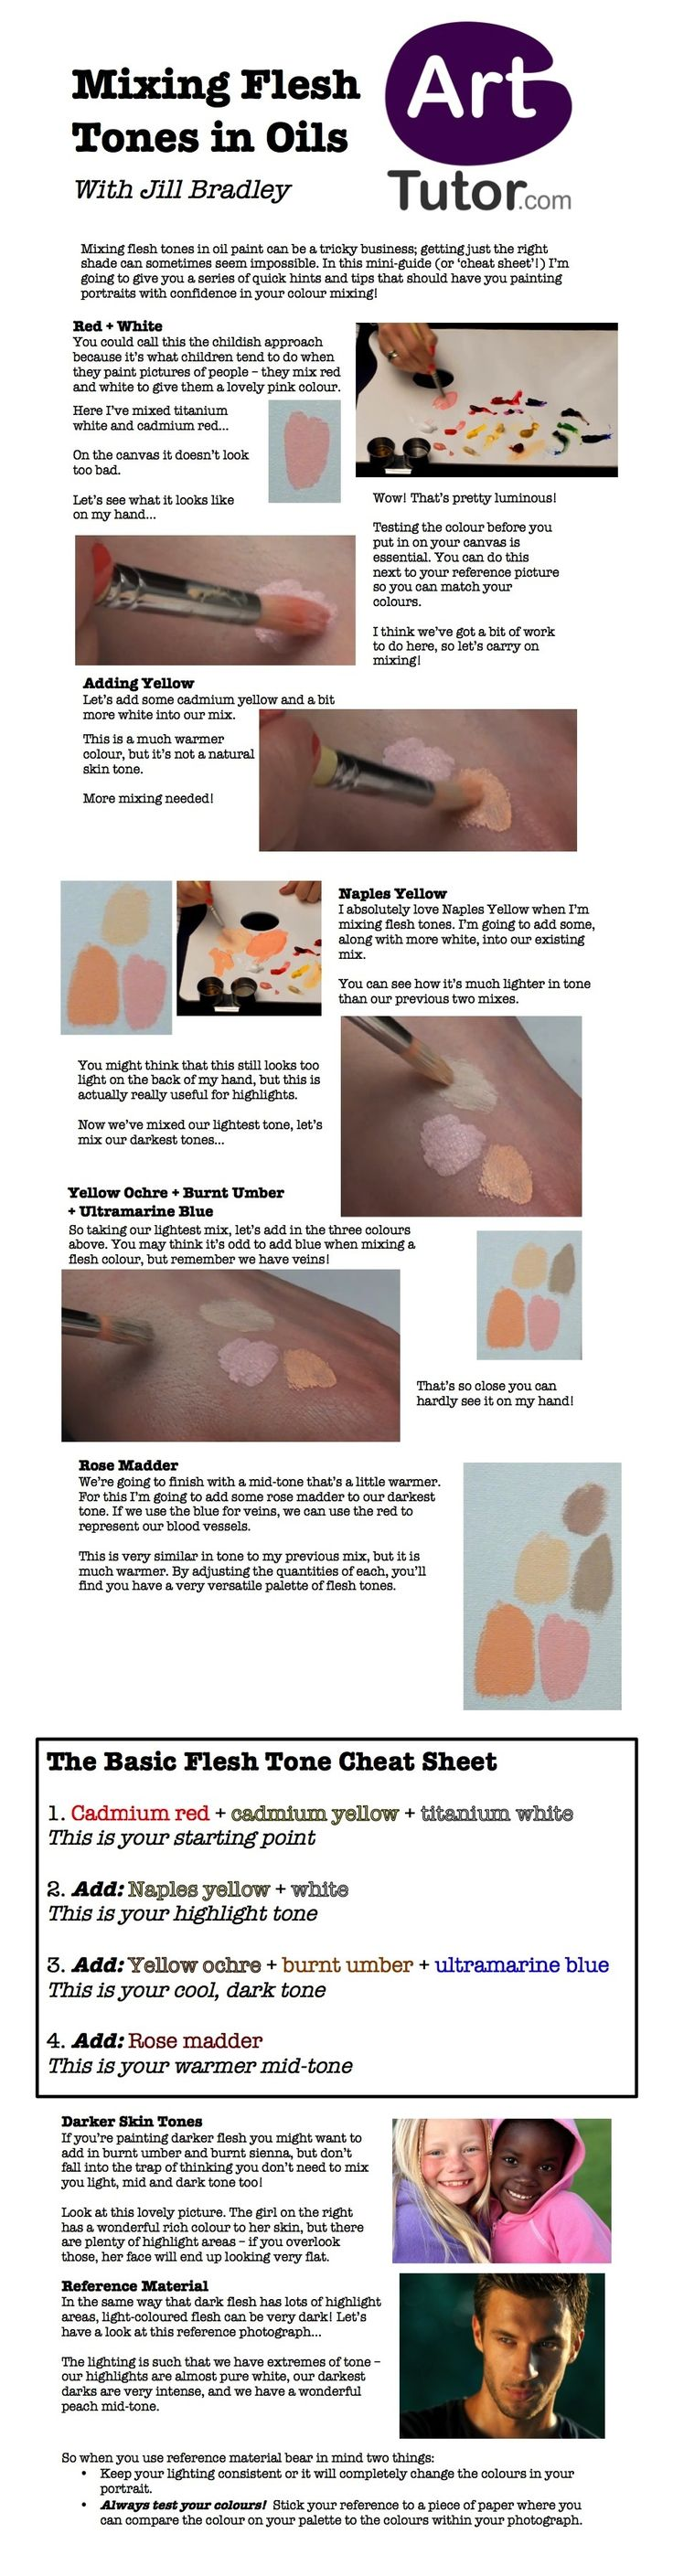 Do you struggle getting realistic flesh tones when painting in oils? Check out this free guide (including cheat sheet!) for some great tips on getting natural-looking flesh tones every time. You can also download a PDF version of this guide by following the link. #oilportraits